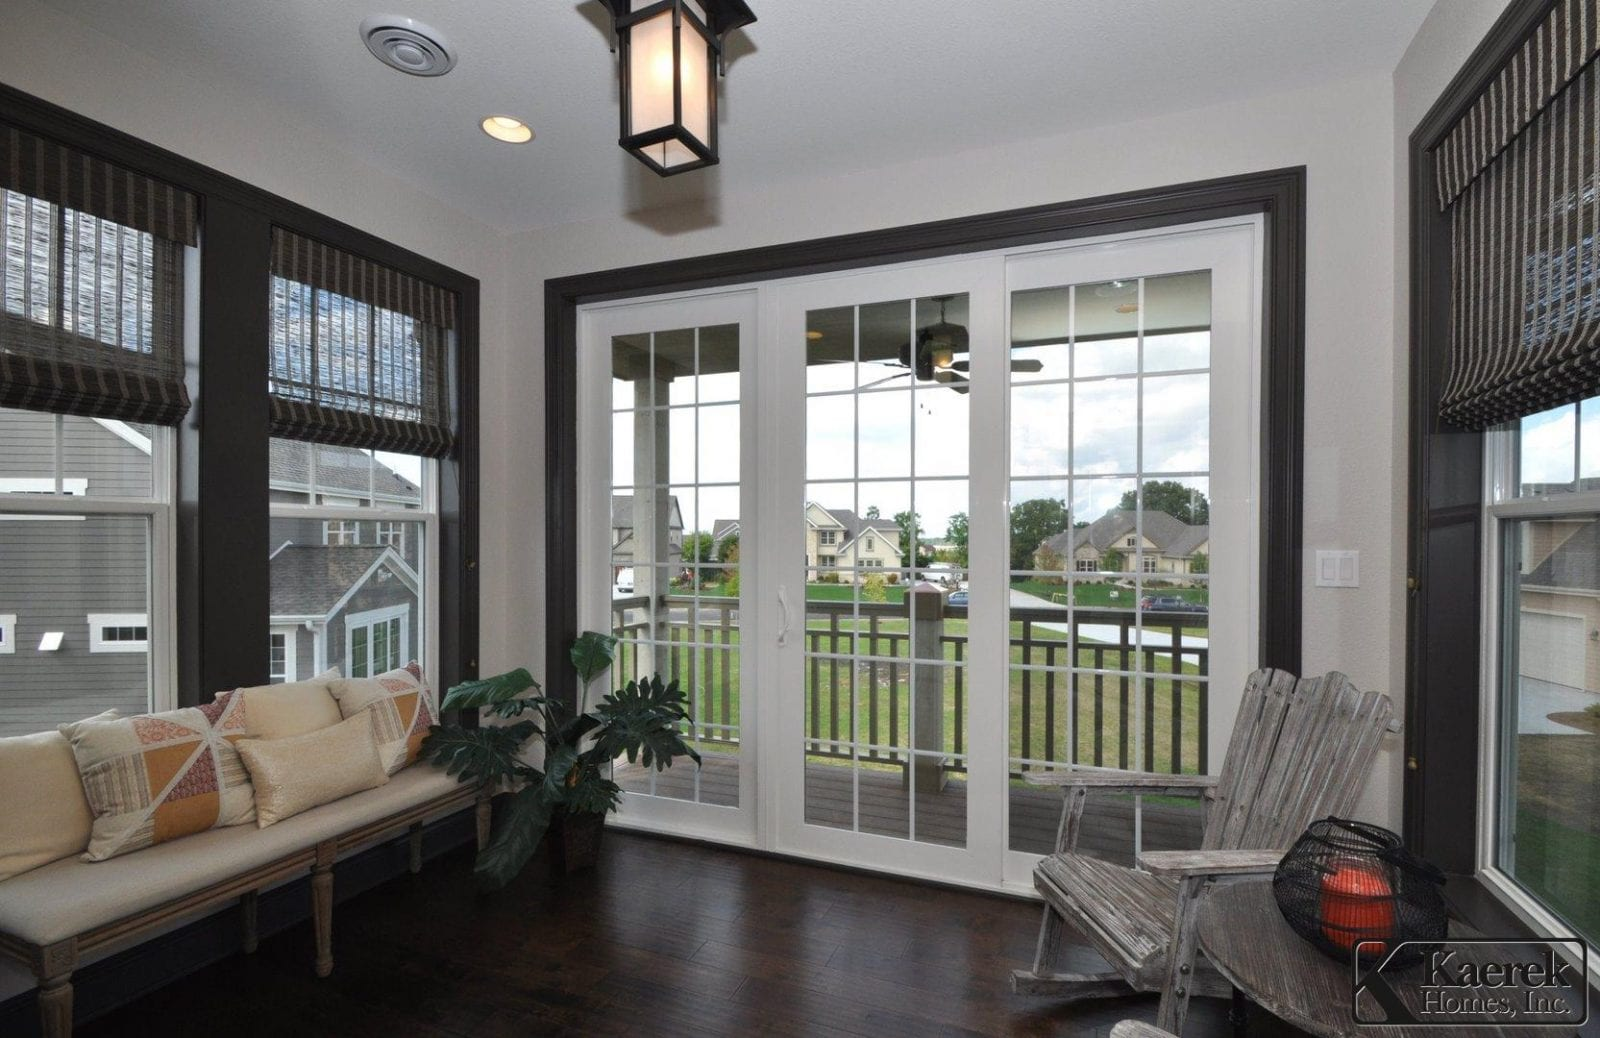 Kaerek Homes Sunroom